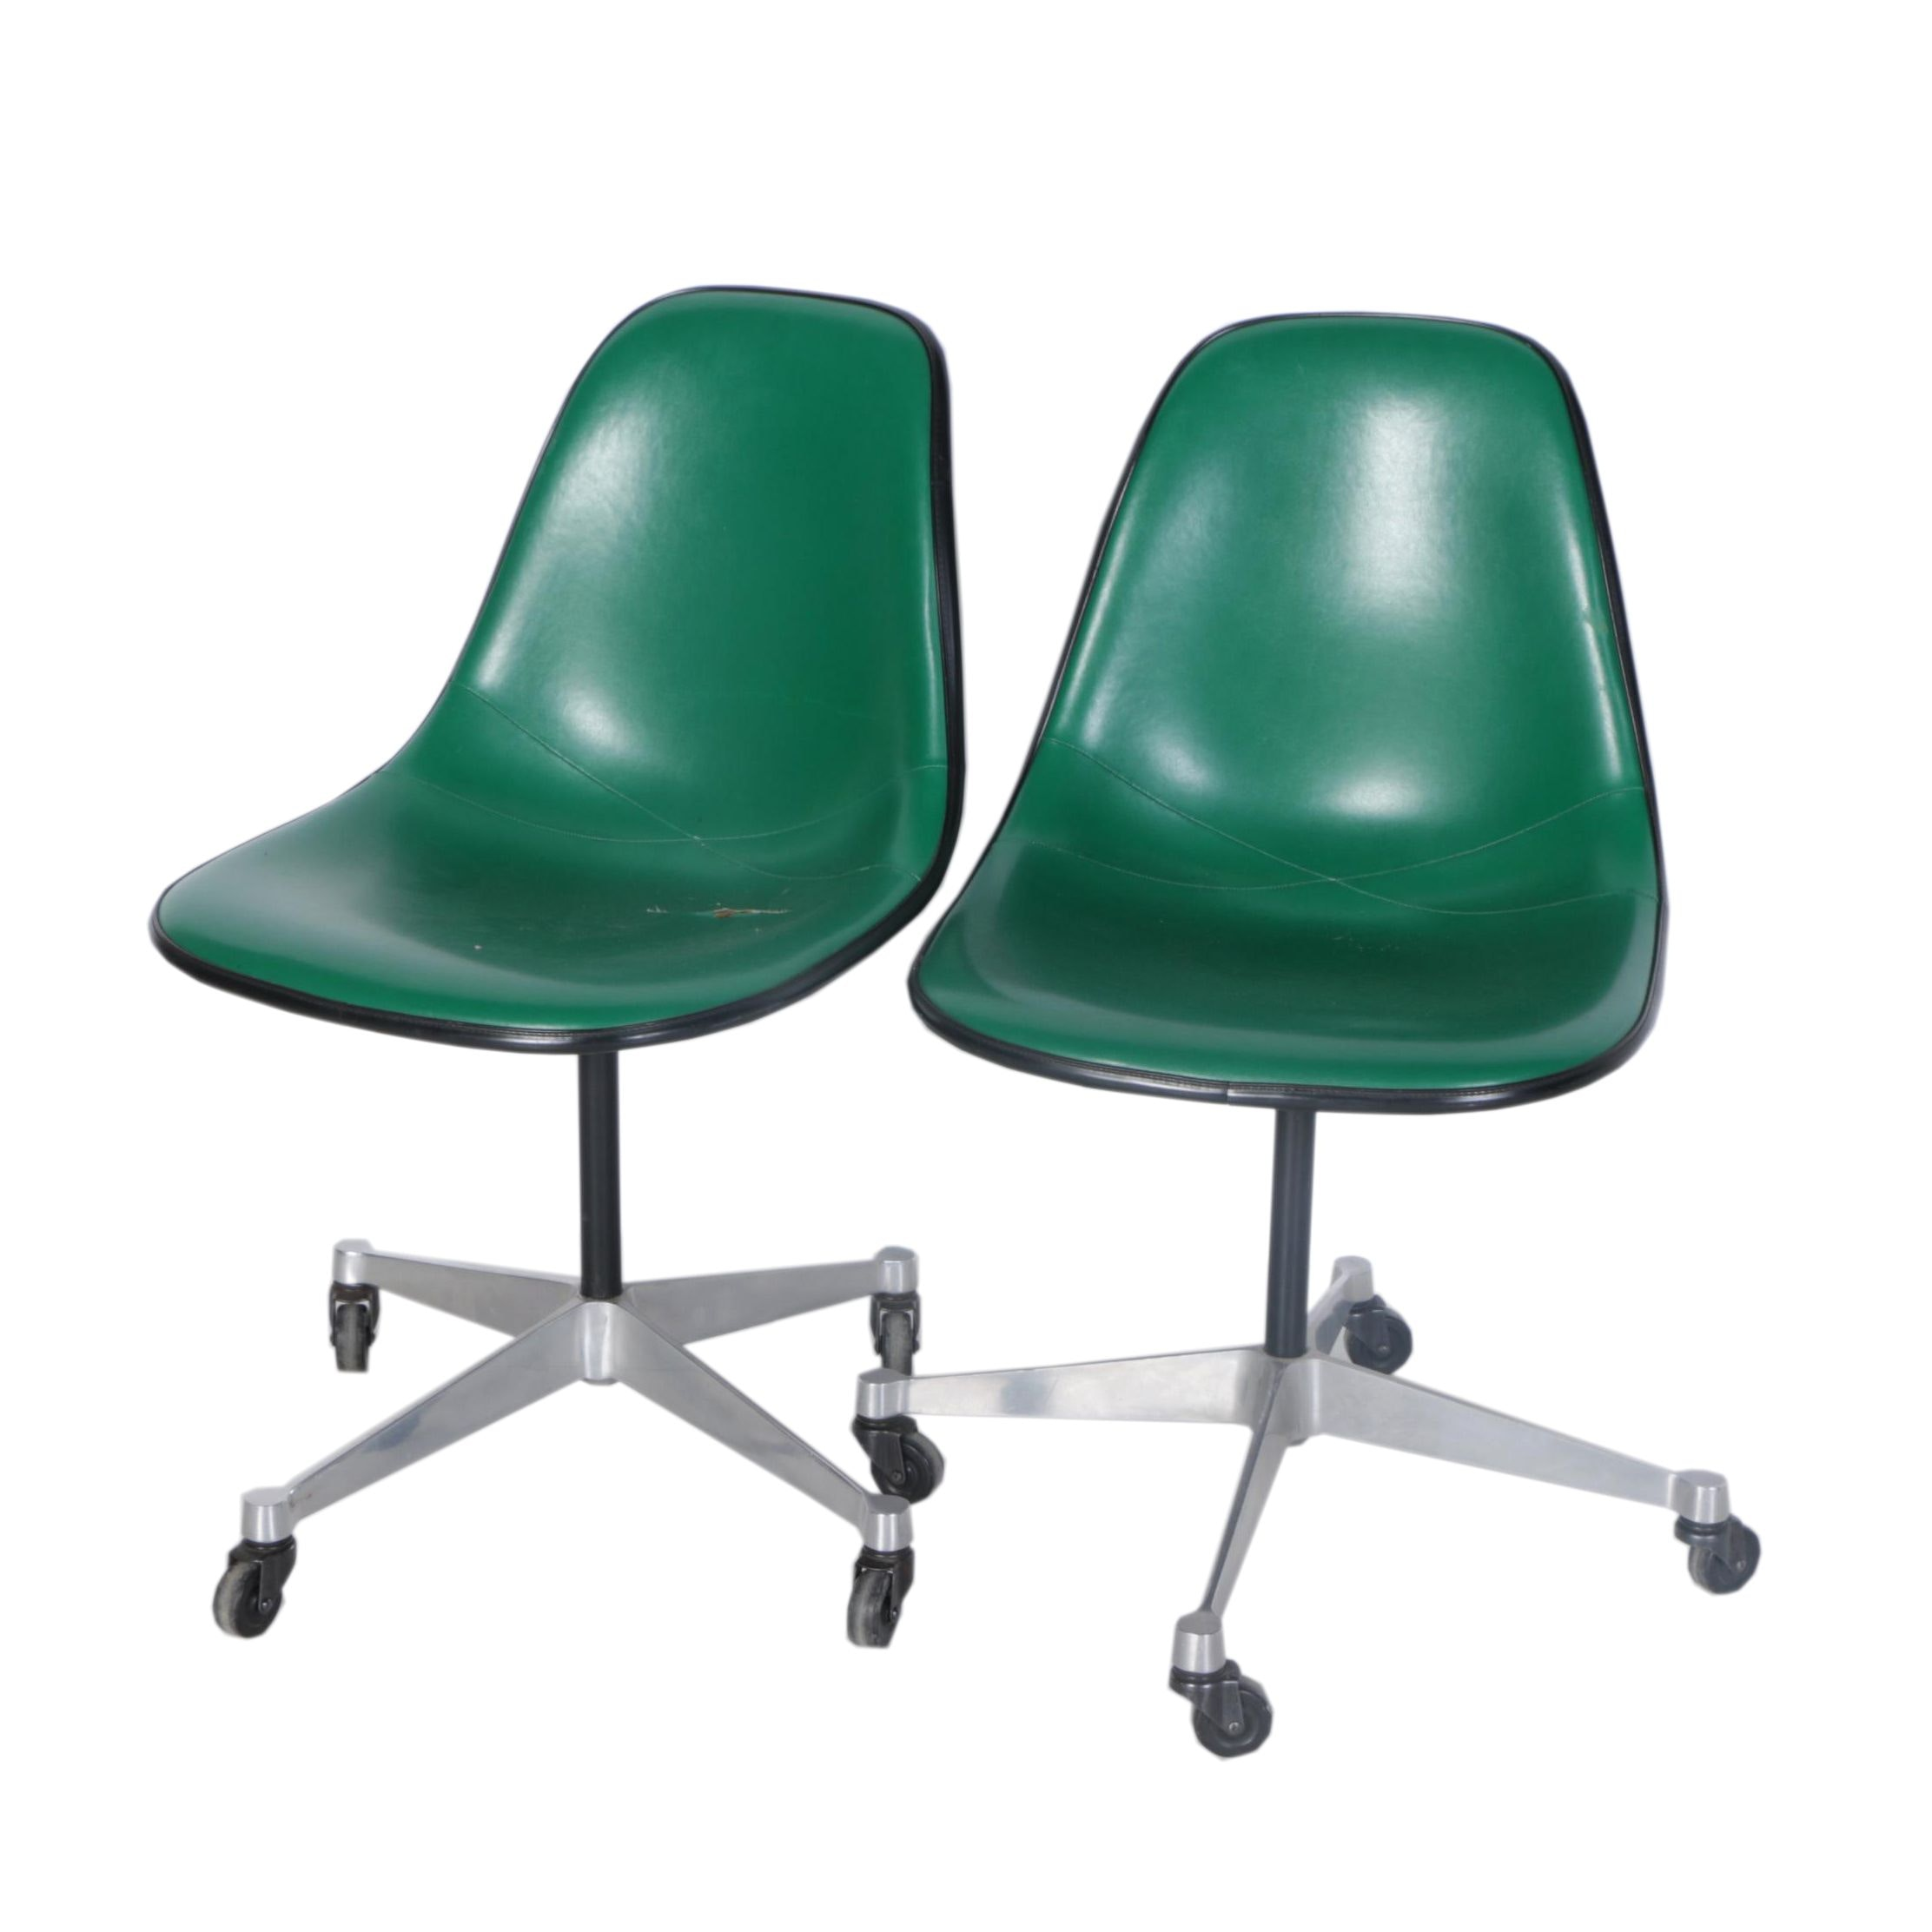 Pair of Eames for Herman Miller Mid Century Modern Chairs